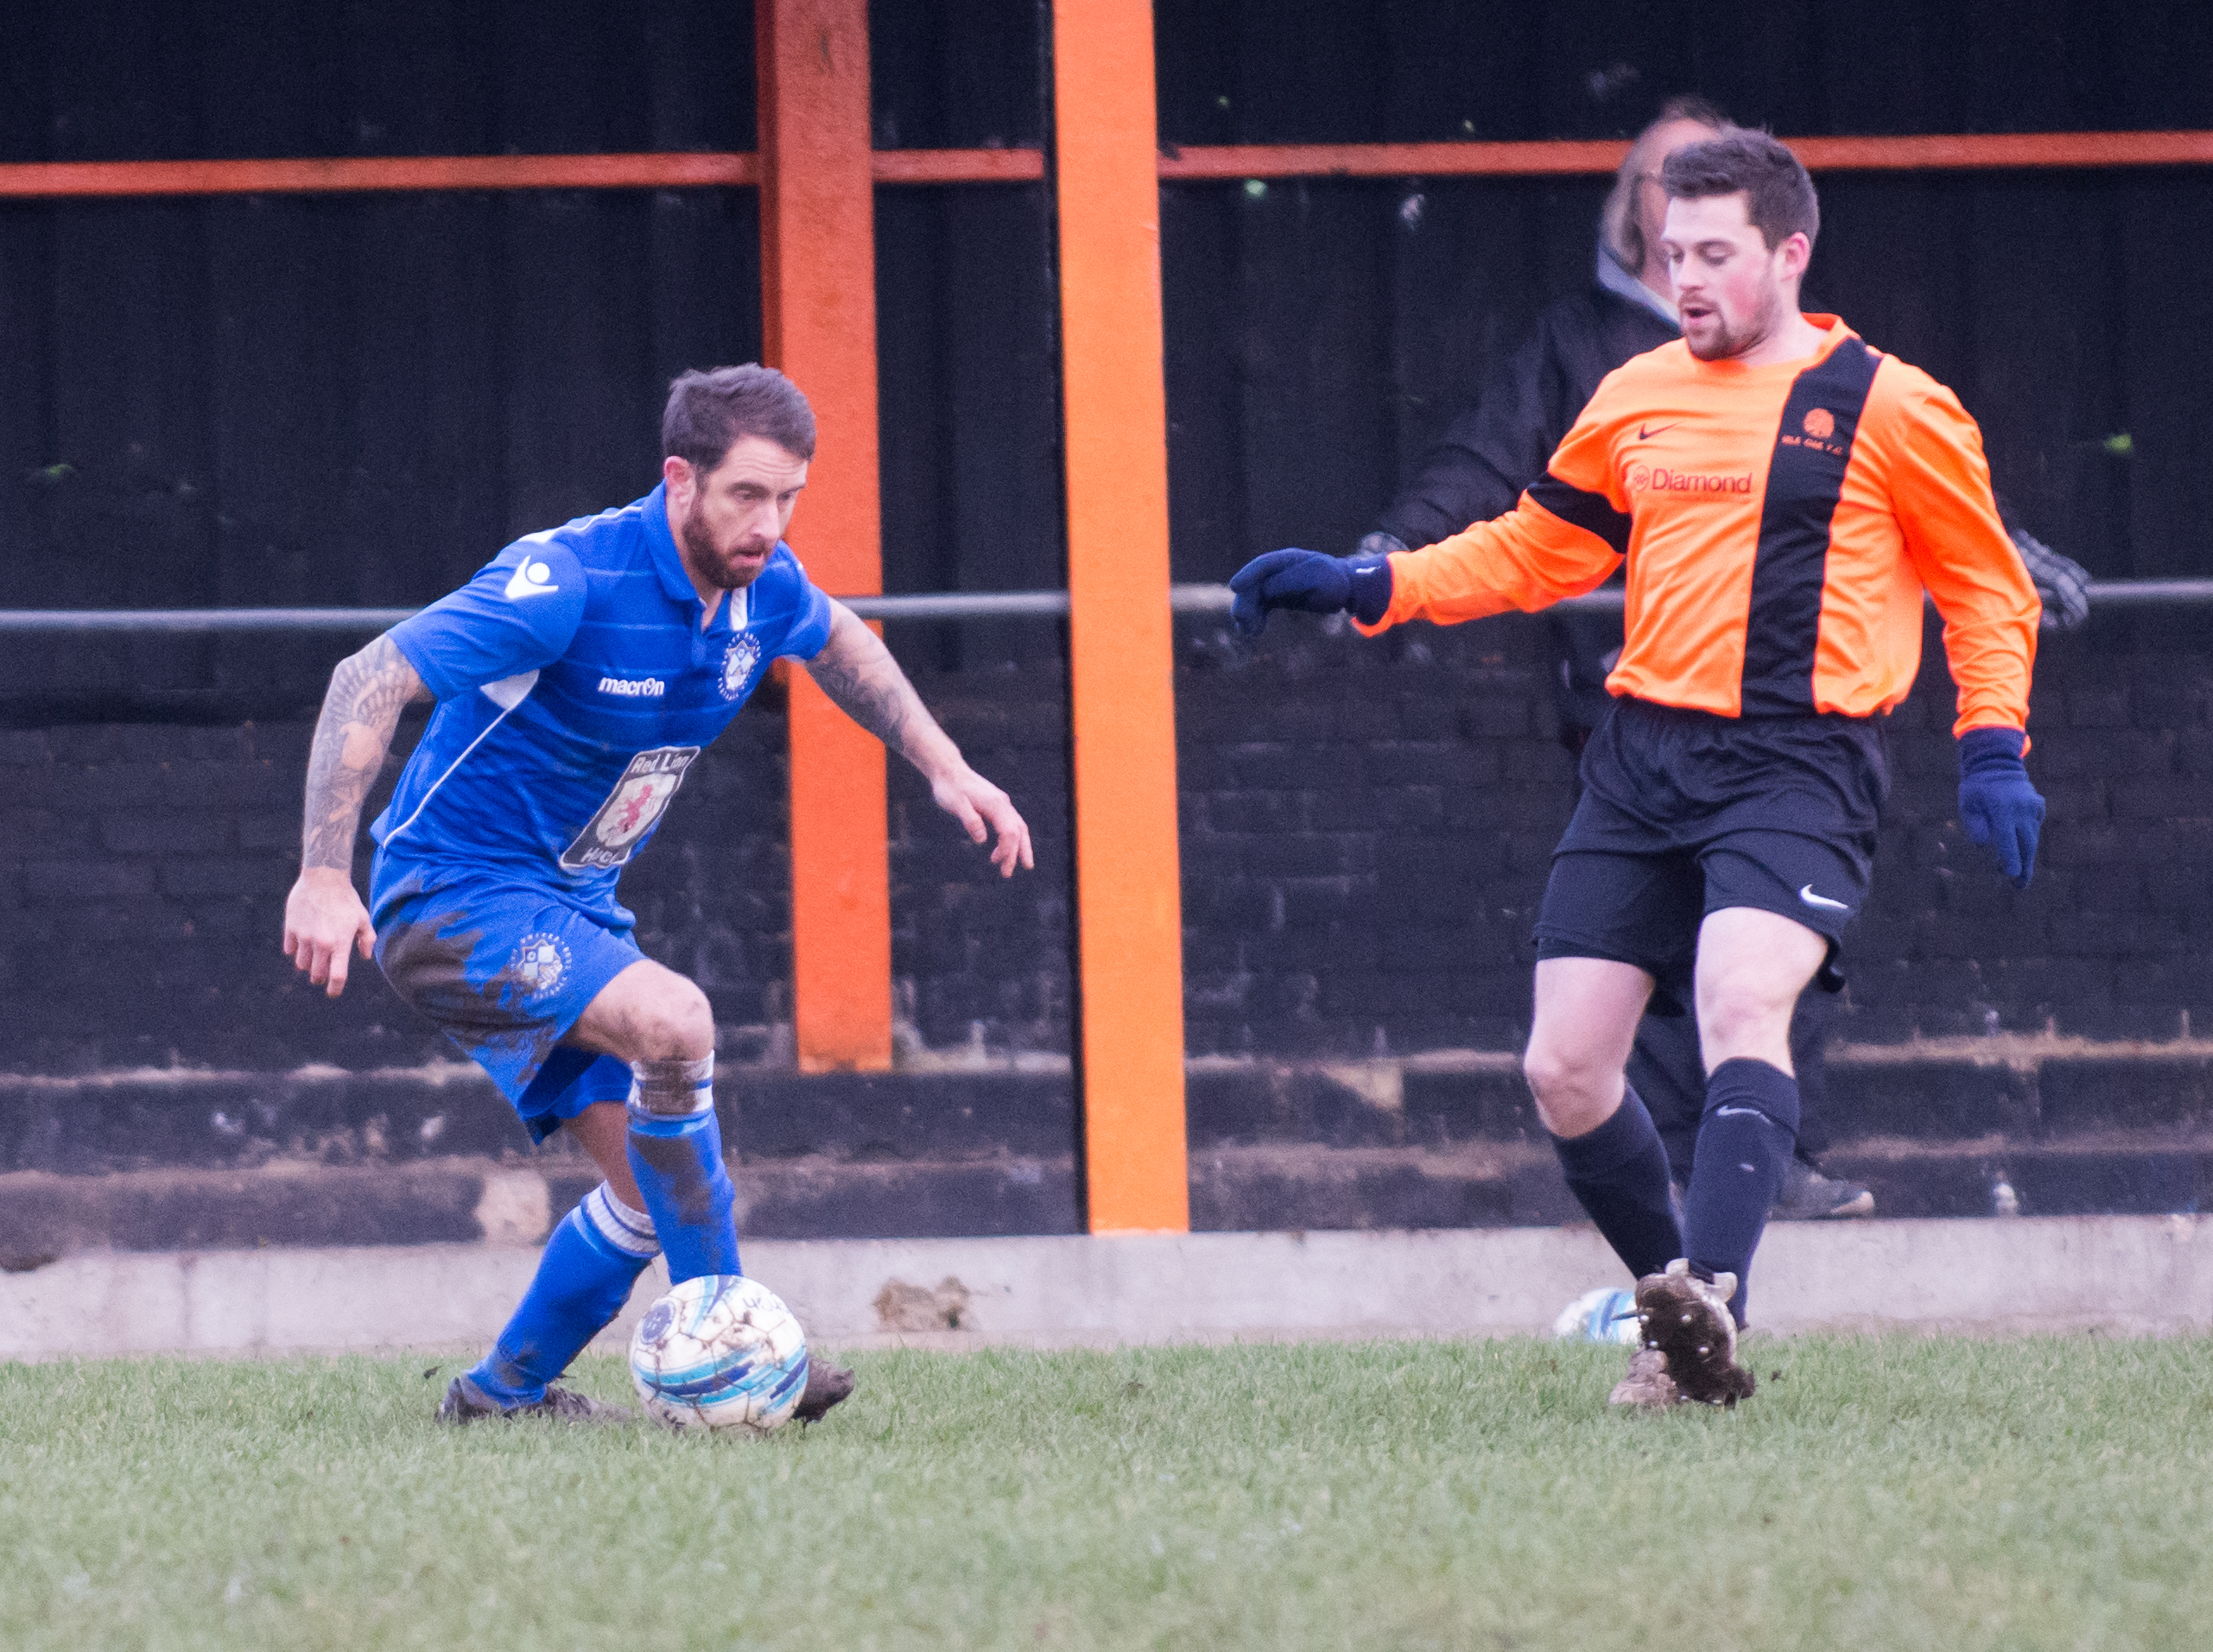 Mile Oak Res vs Sidley United 09.12.17 11